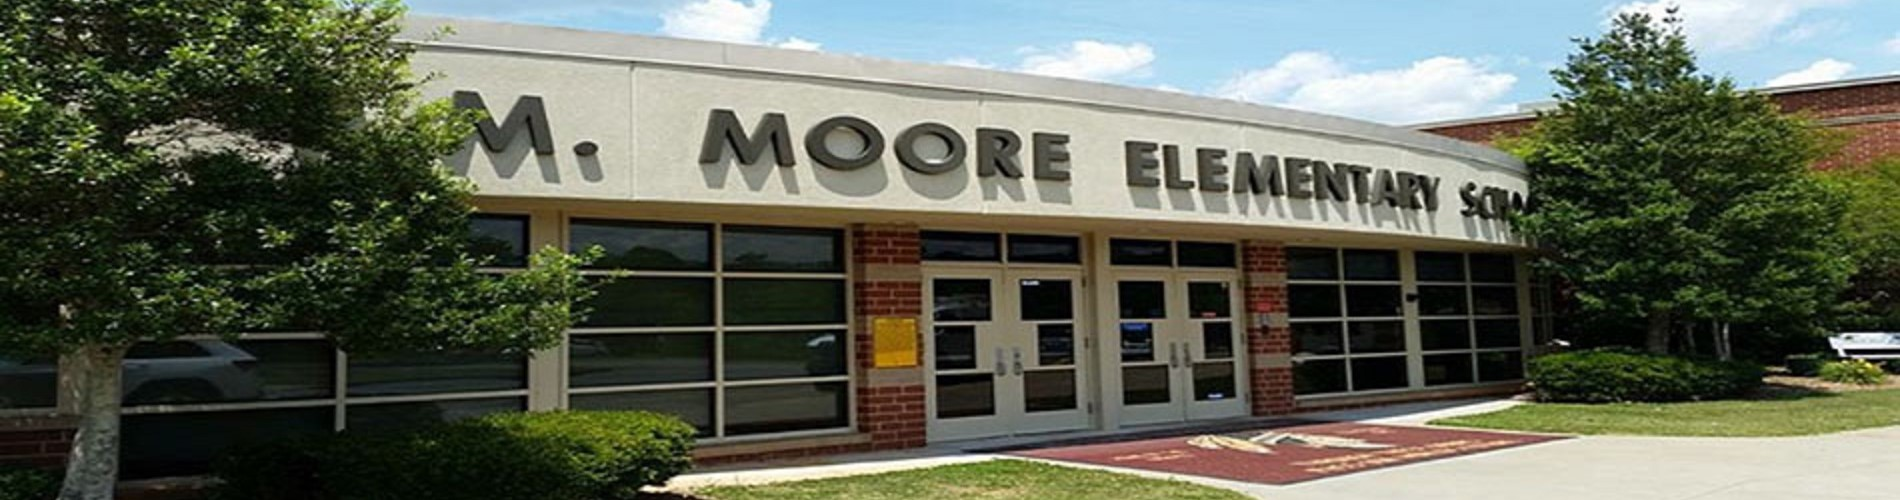 Picture of RM Moore Elementary School